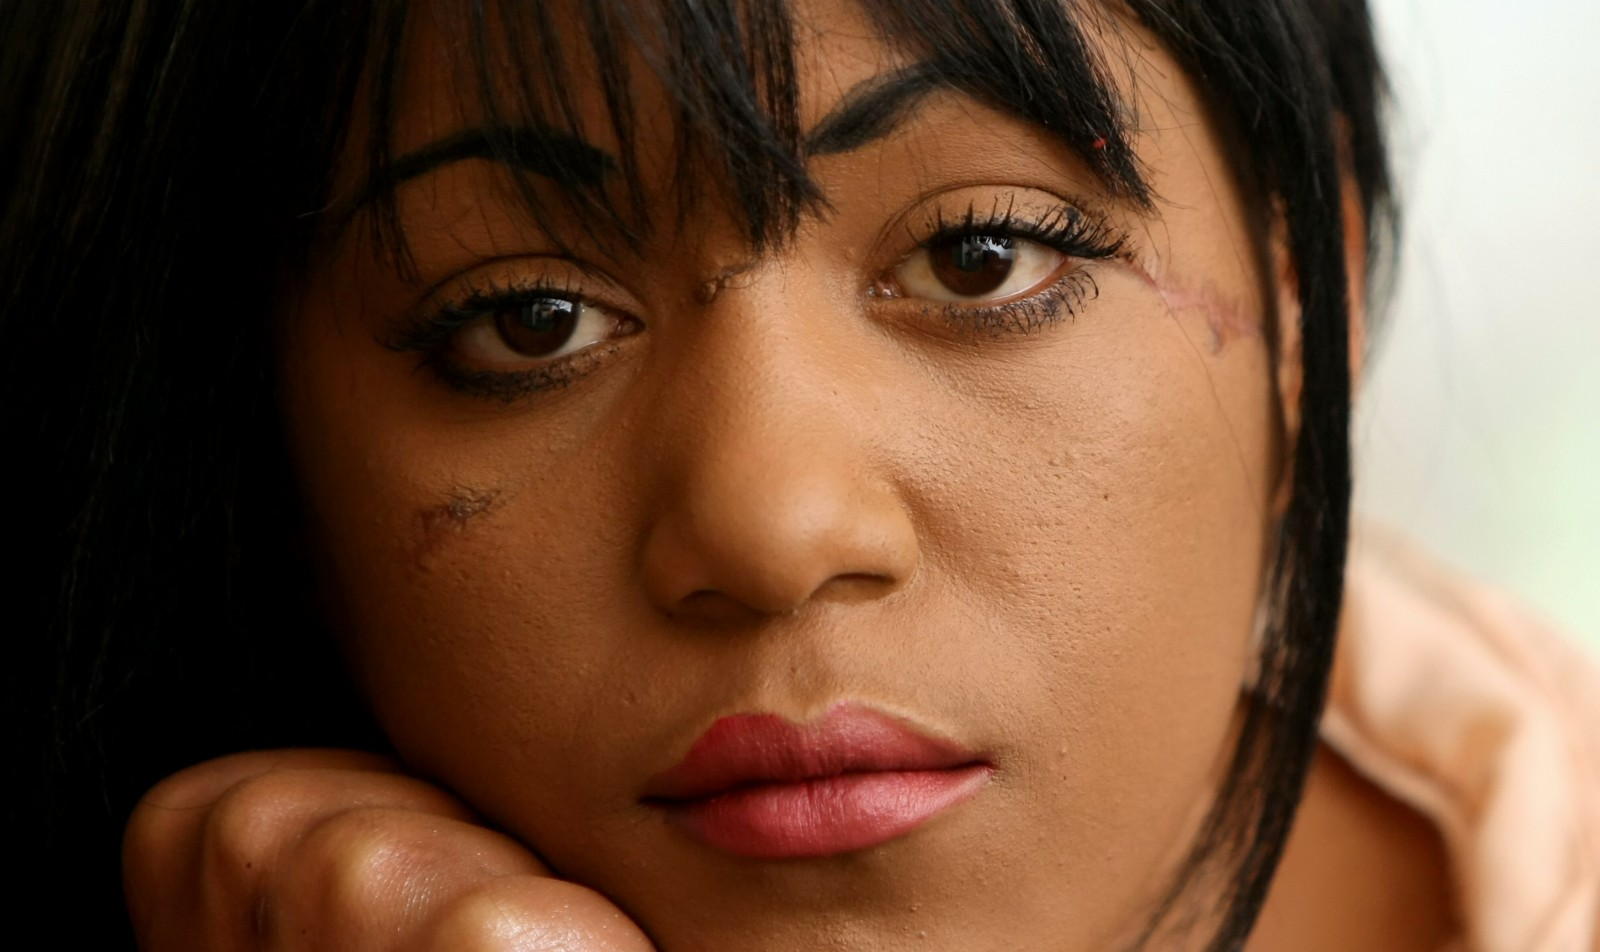 'I'll make people see my scars are beautiful' Model disfigured by her BEST FRIEND